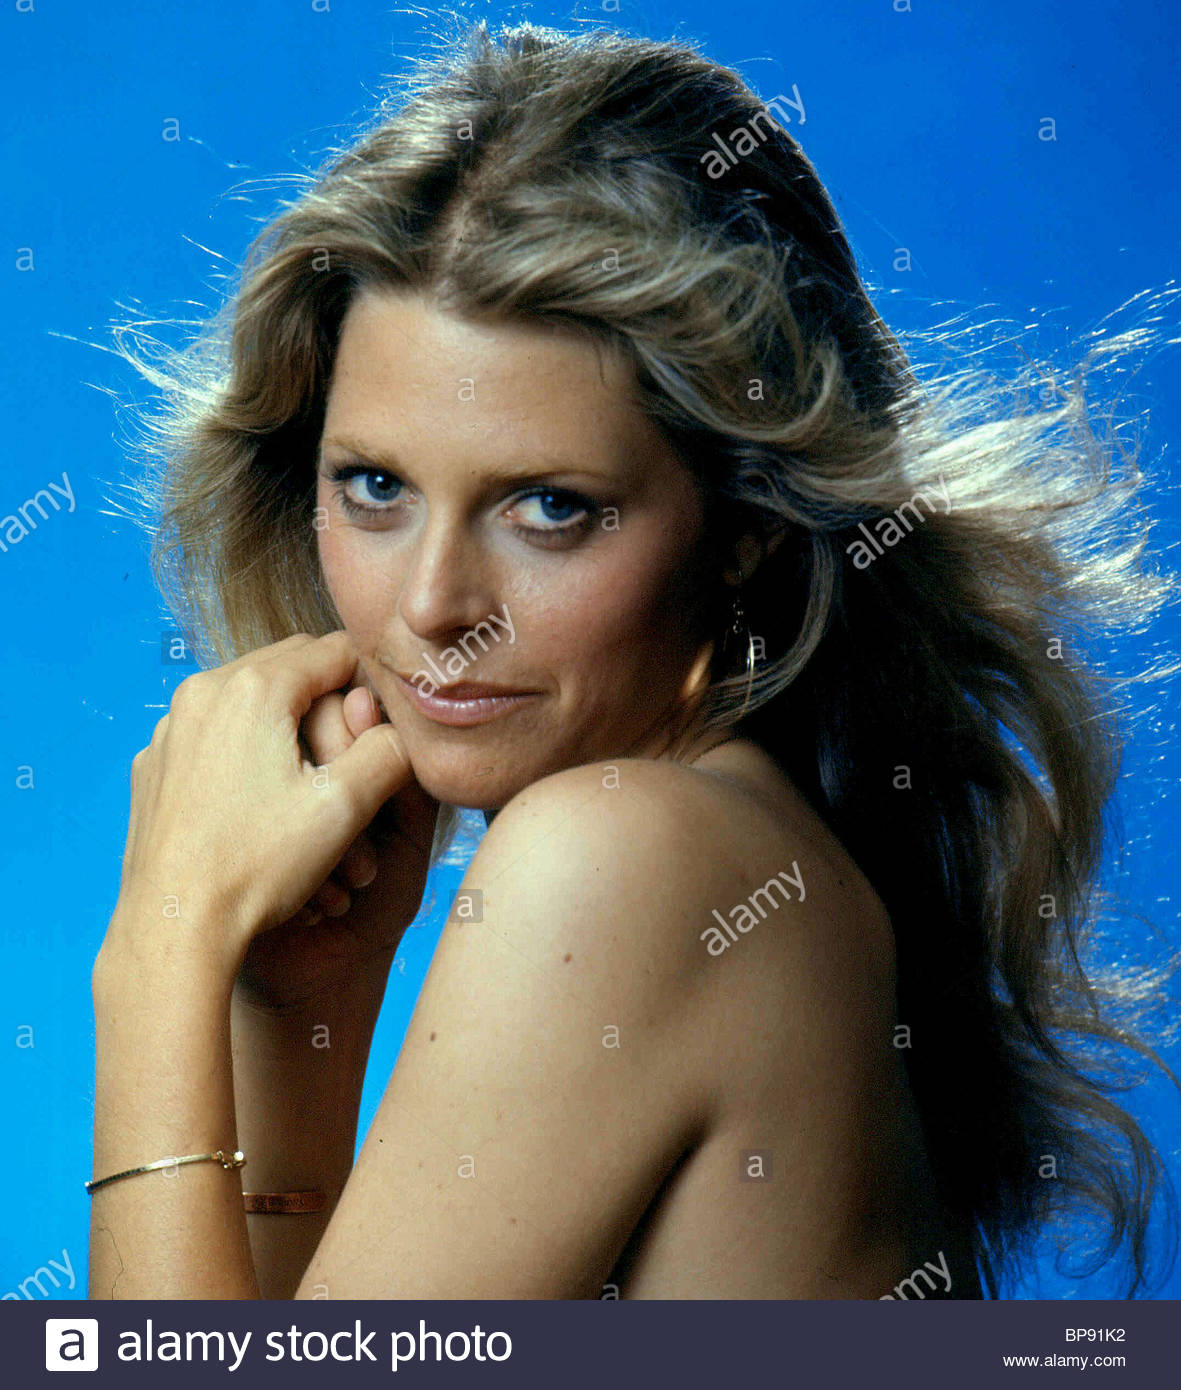 LINDSAY WAGNER THE BIONIC WOMAN (1976) - Stock Image